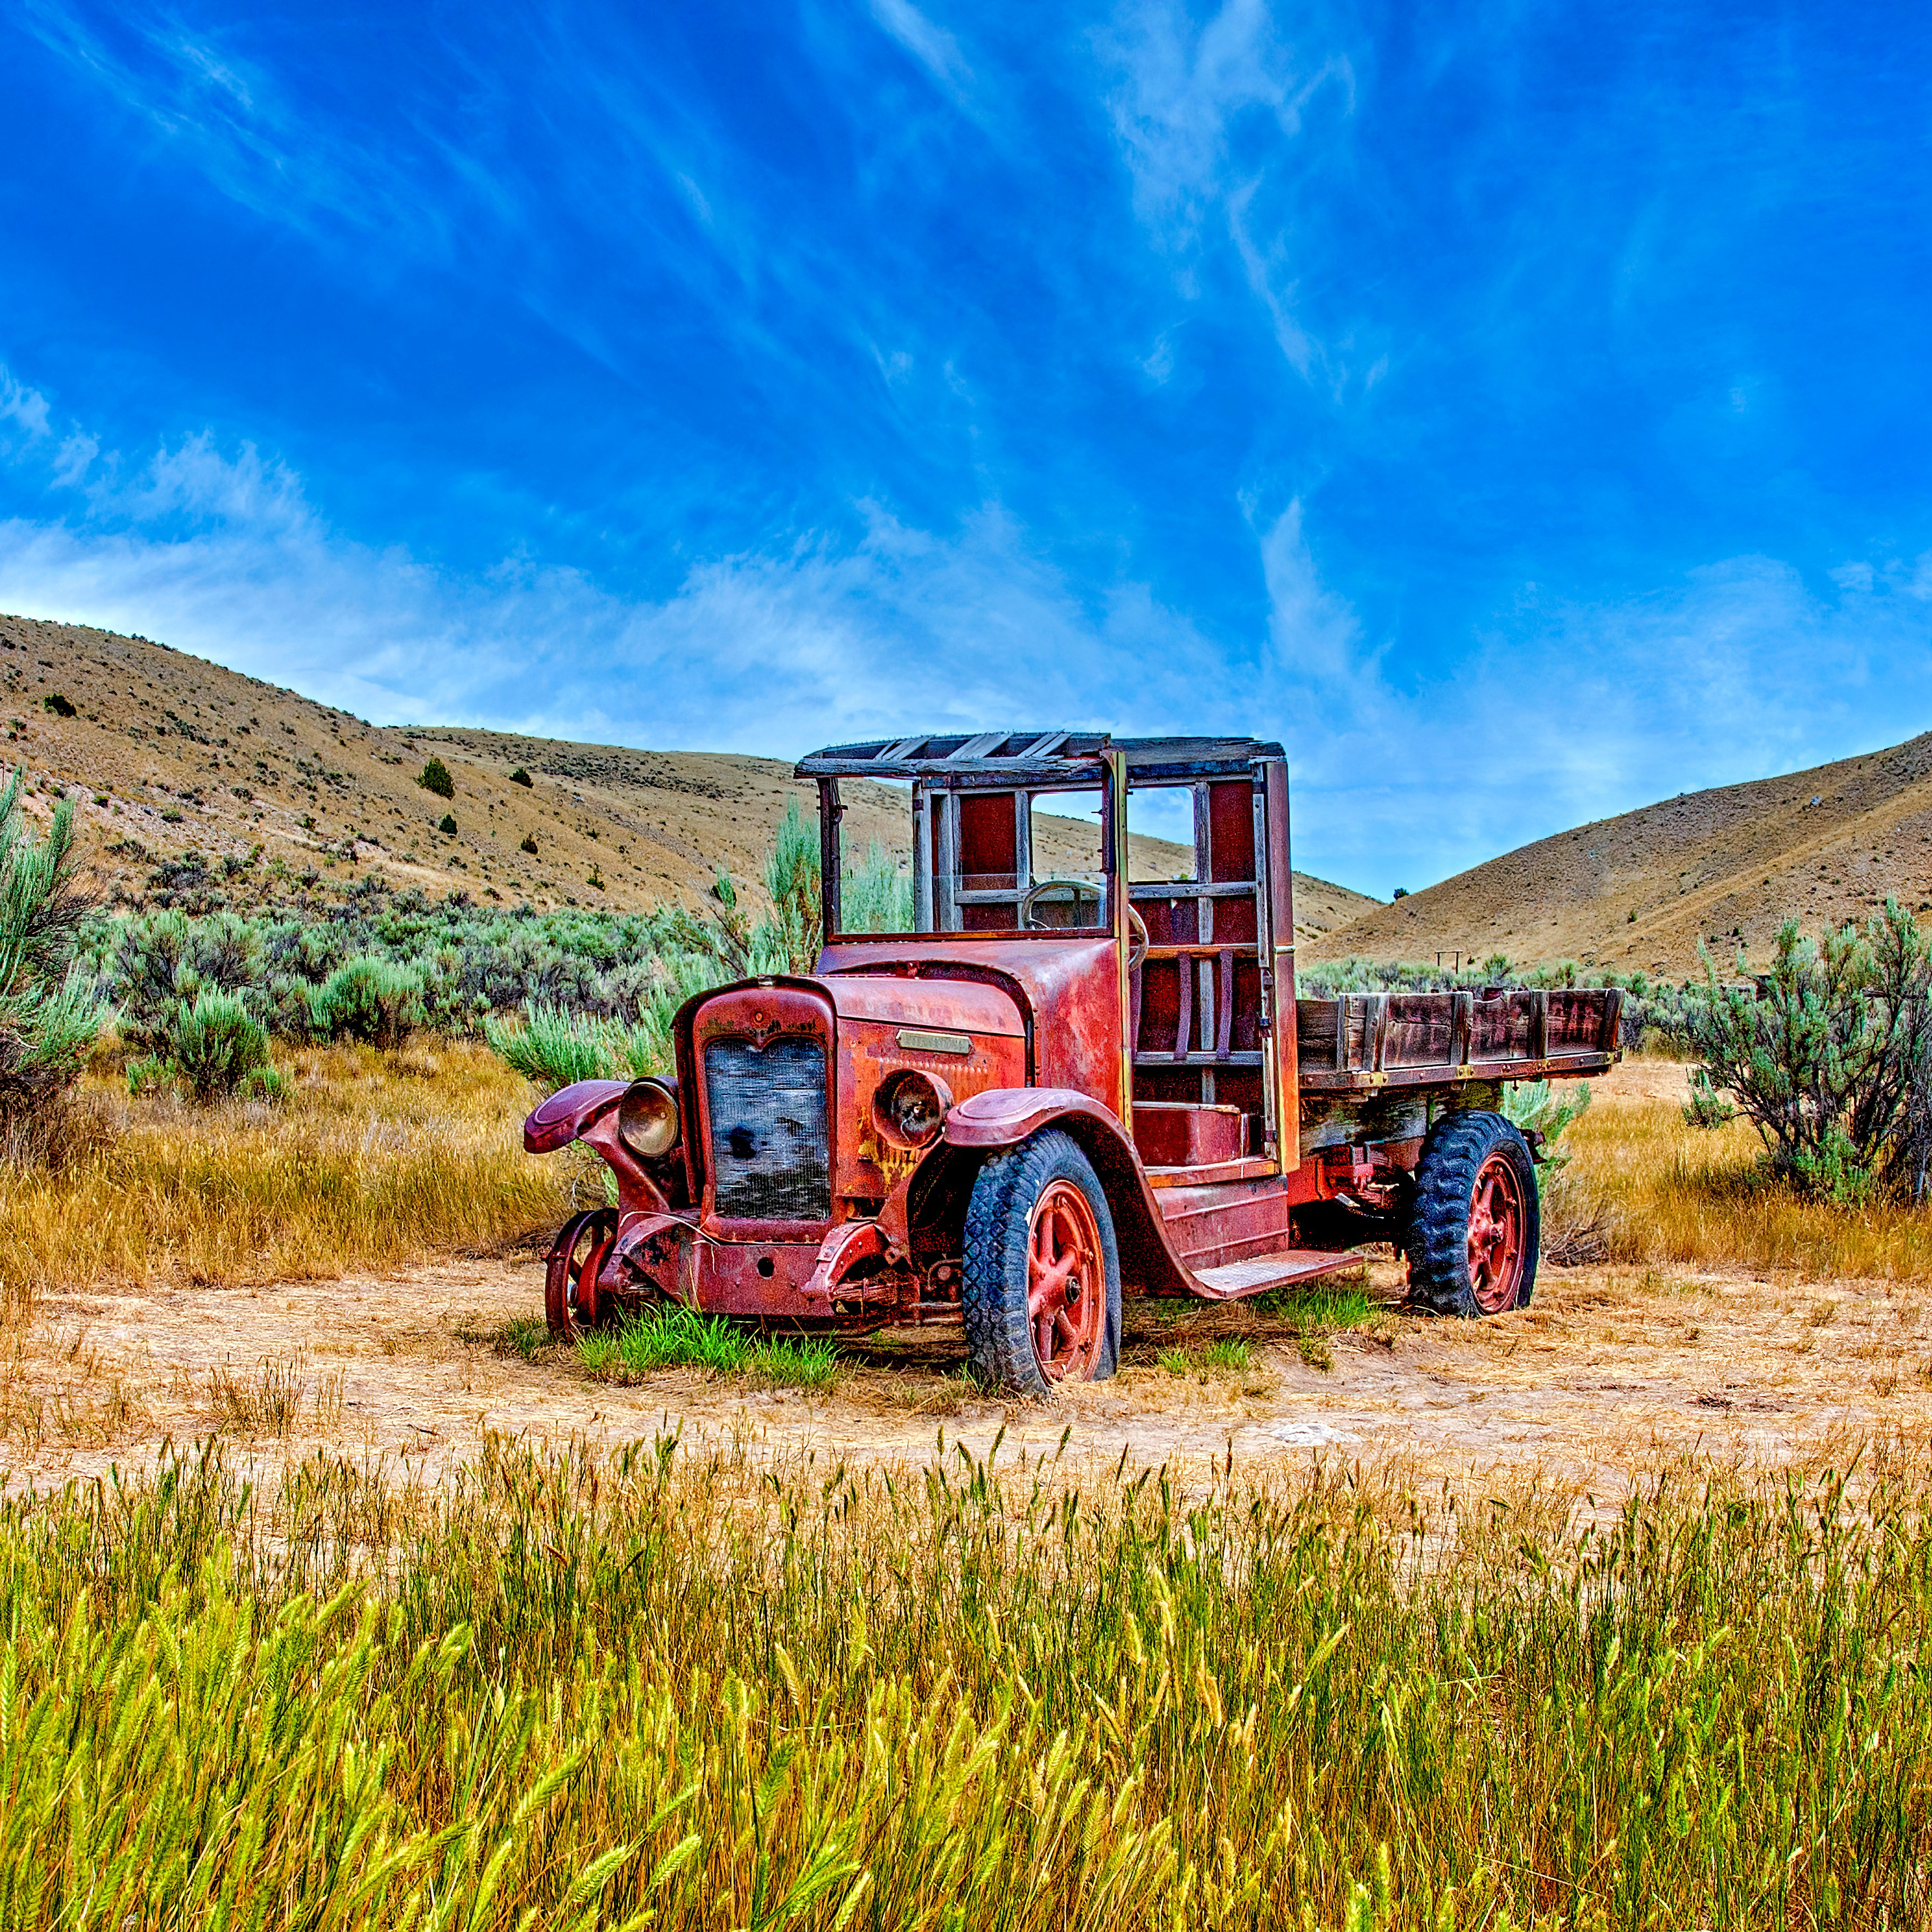 A GHOST TRUCK - It's really not a ghost truck, but it is in one of the best ghost towns... Bodie, California.